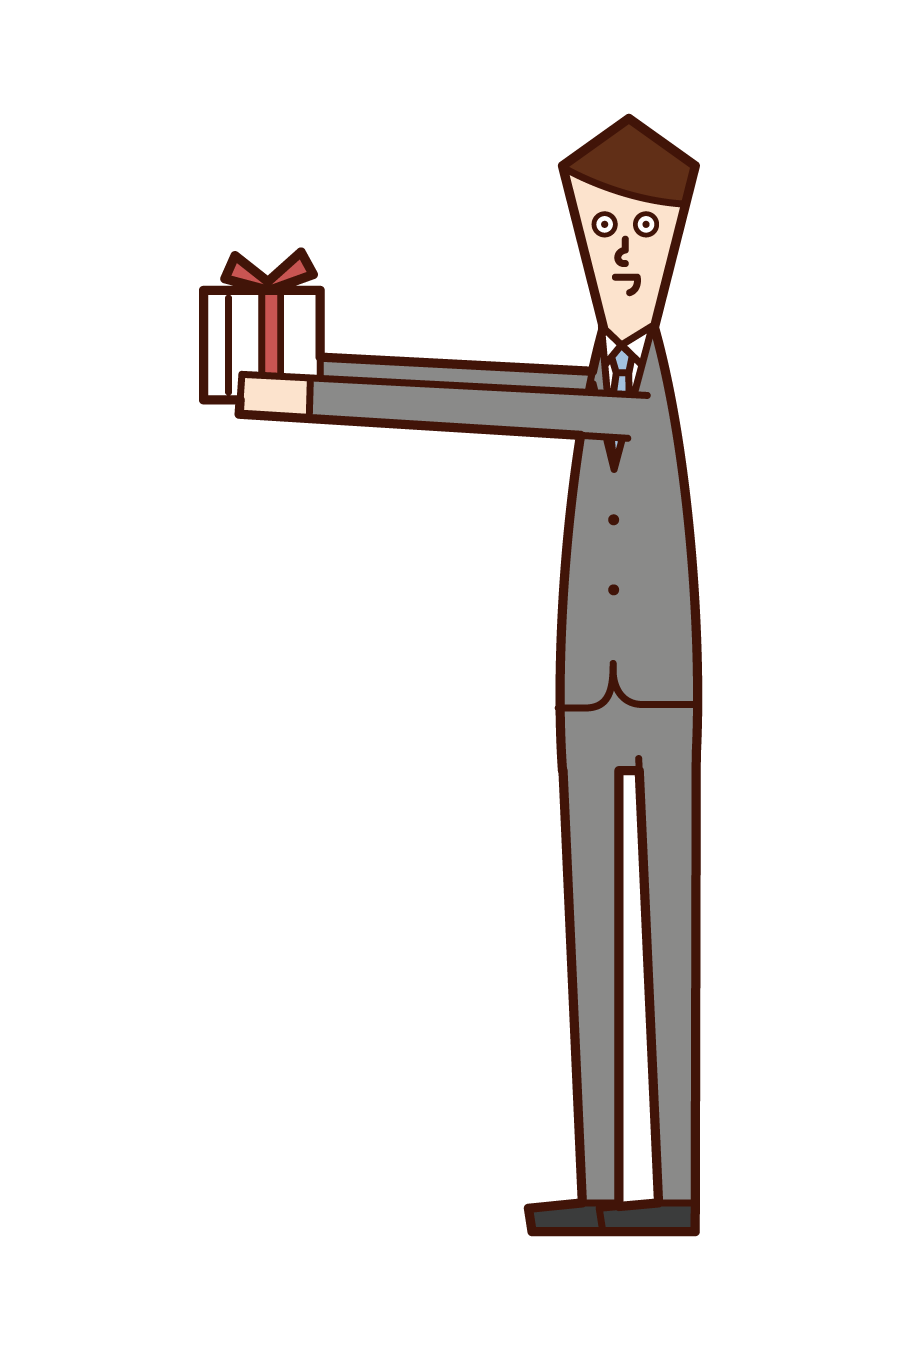 Illustration of a man giving a present